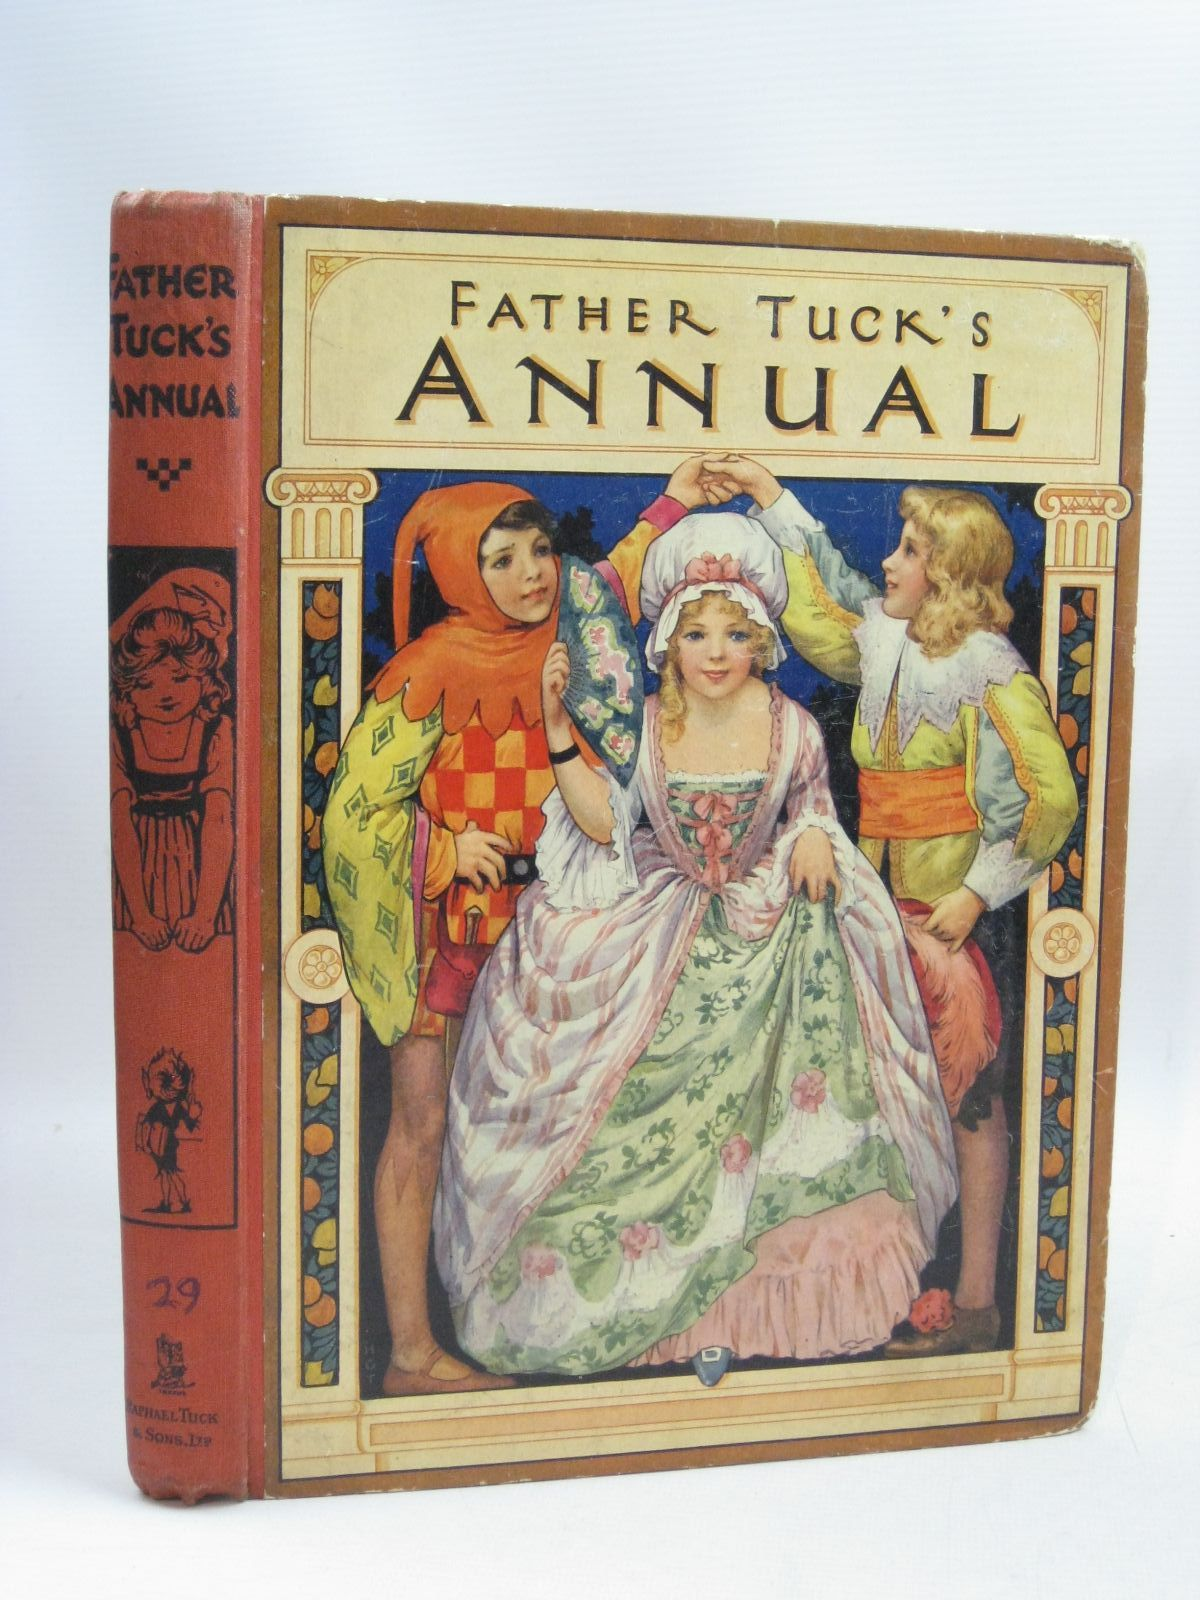 Photo of FATHER TUCK'S ANNUAL - 29TH YEAR written by Wynne, May Baker, Margaret Herbertson, Agnes Grozier et al, illustrated by Theaker, Harry G. Wain, Louis Cowham, Hilda et al., published by Raphael Tuck & Sons Ltd. (STOCK CODE: 1405243)  for sale by Stella & Rose's Books